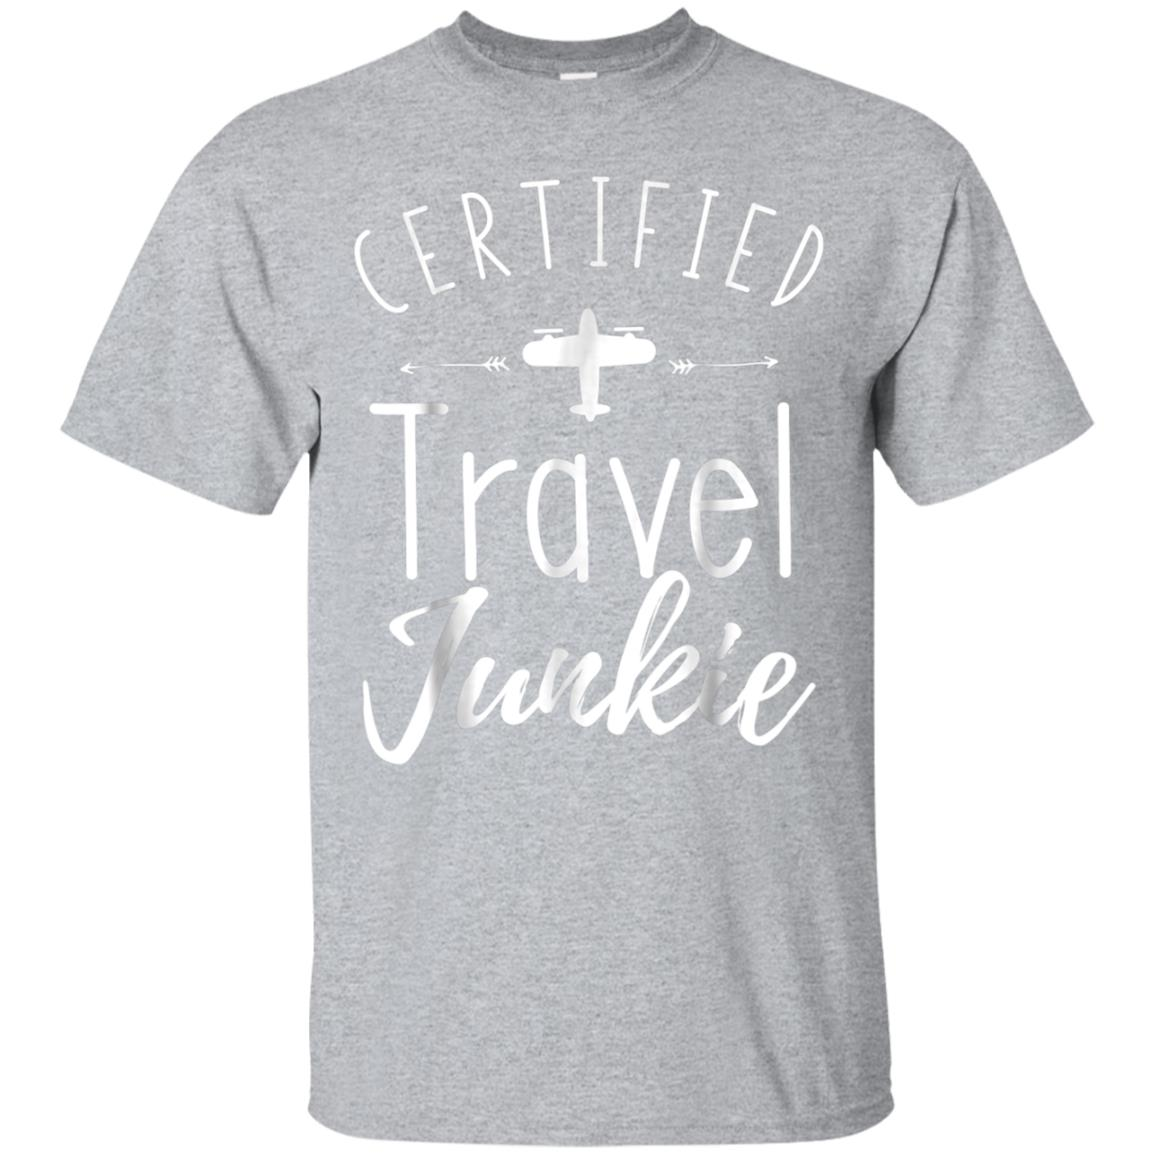 Certified Travel Junkie T-shirts for Men and Women 99promocode